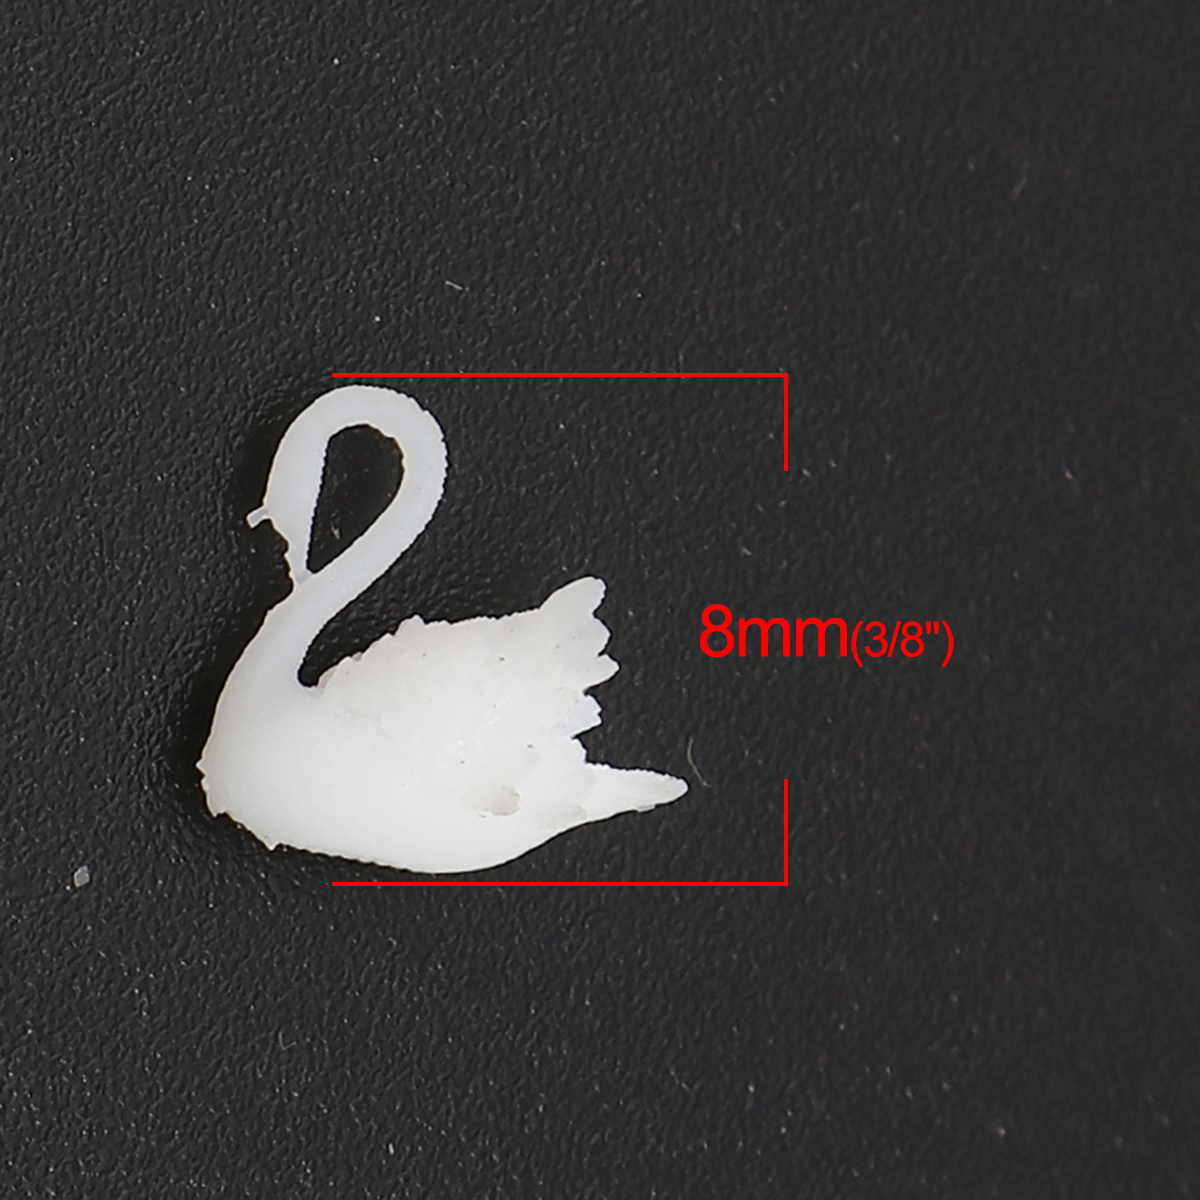 Hot Plastic Resin White Swan Anima Jewelry Craft Filling Materiall Mushroom Creative Earrings Necklace DIY Materials Charms